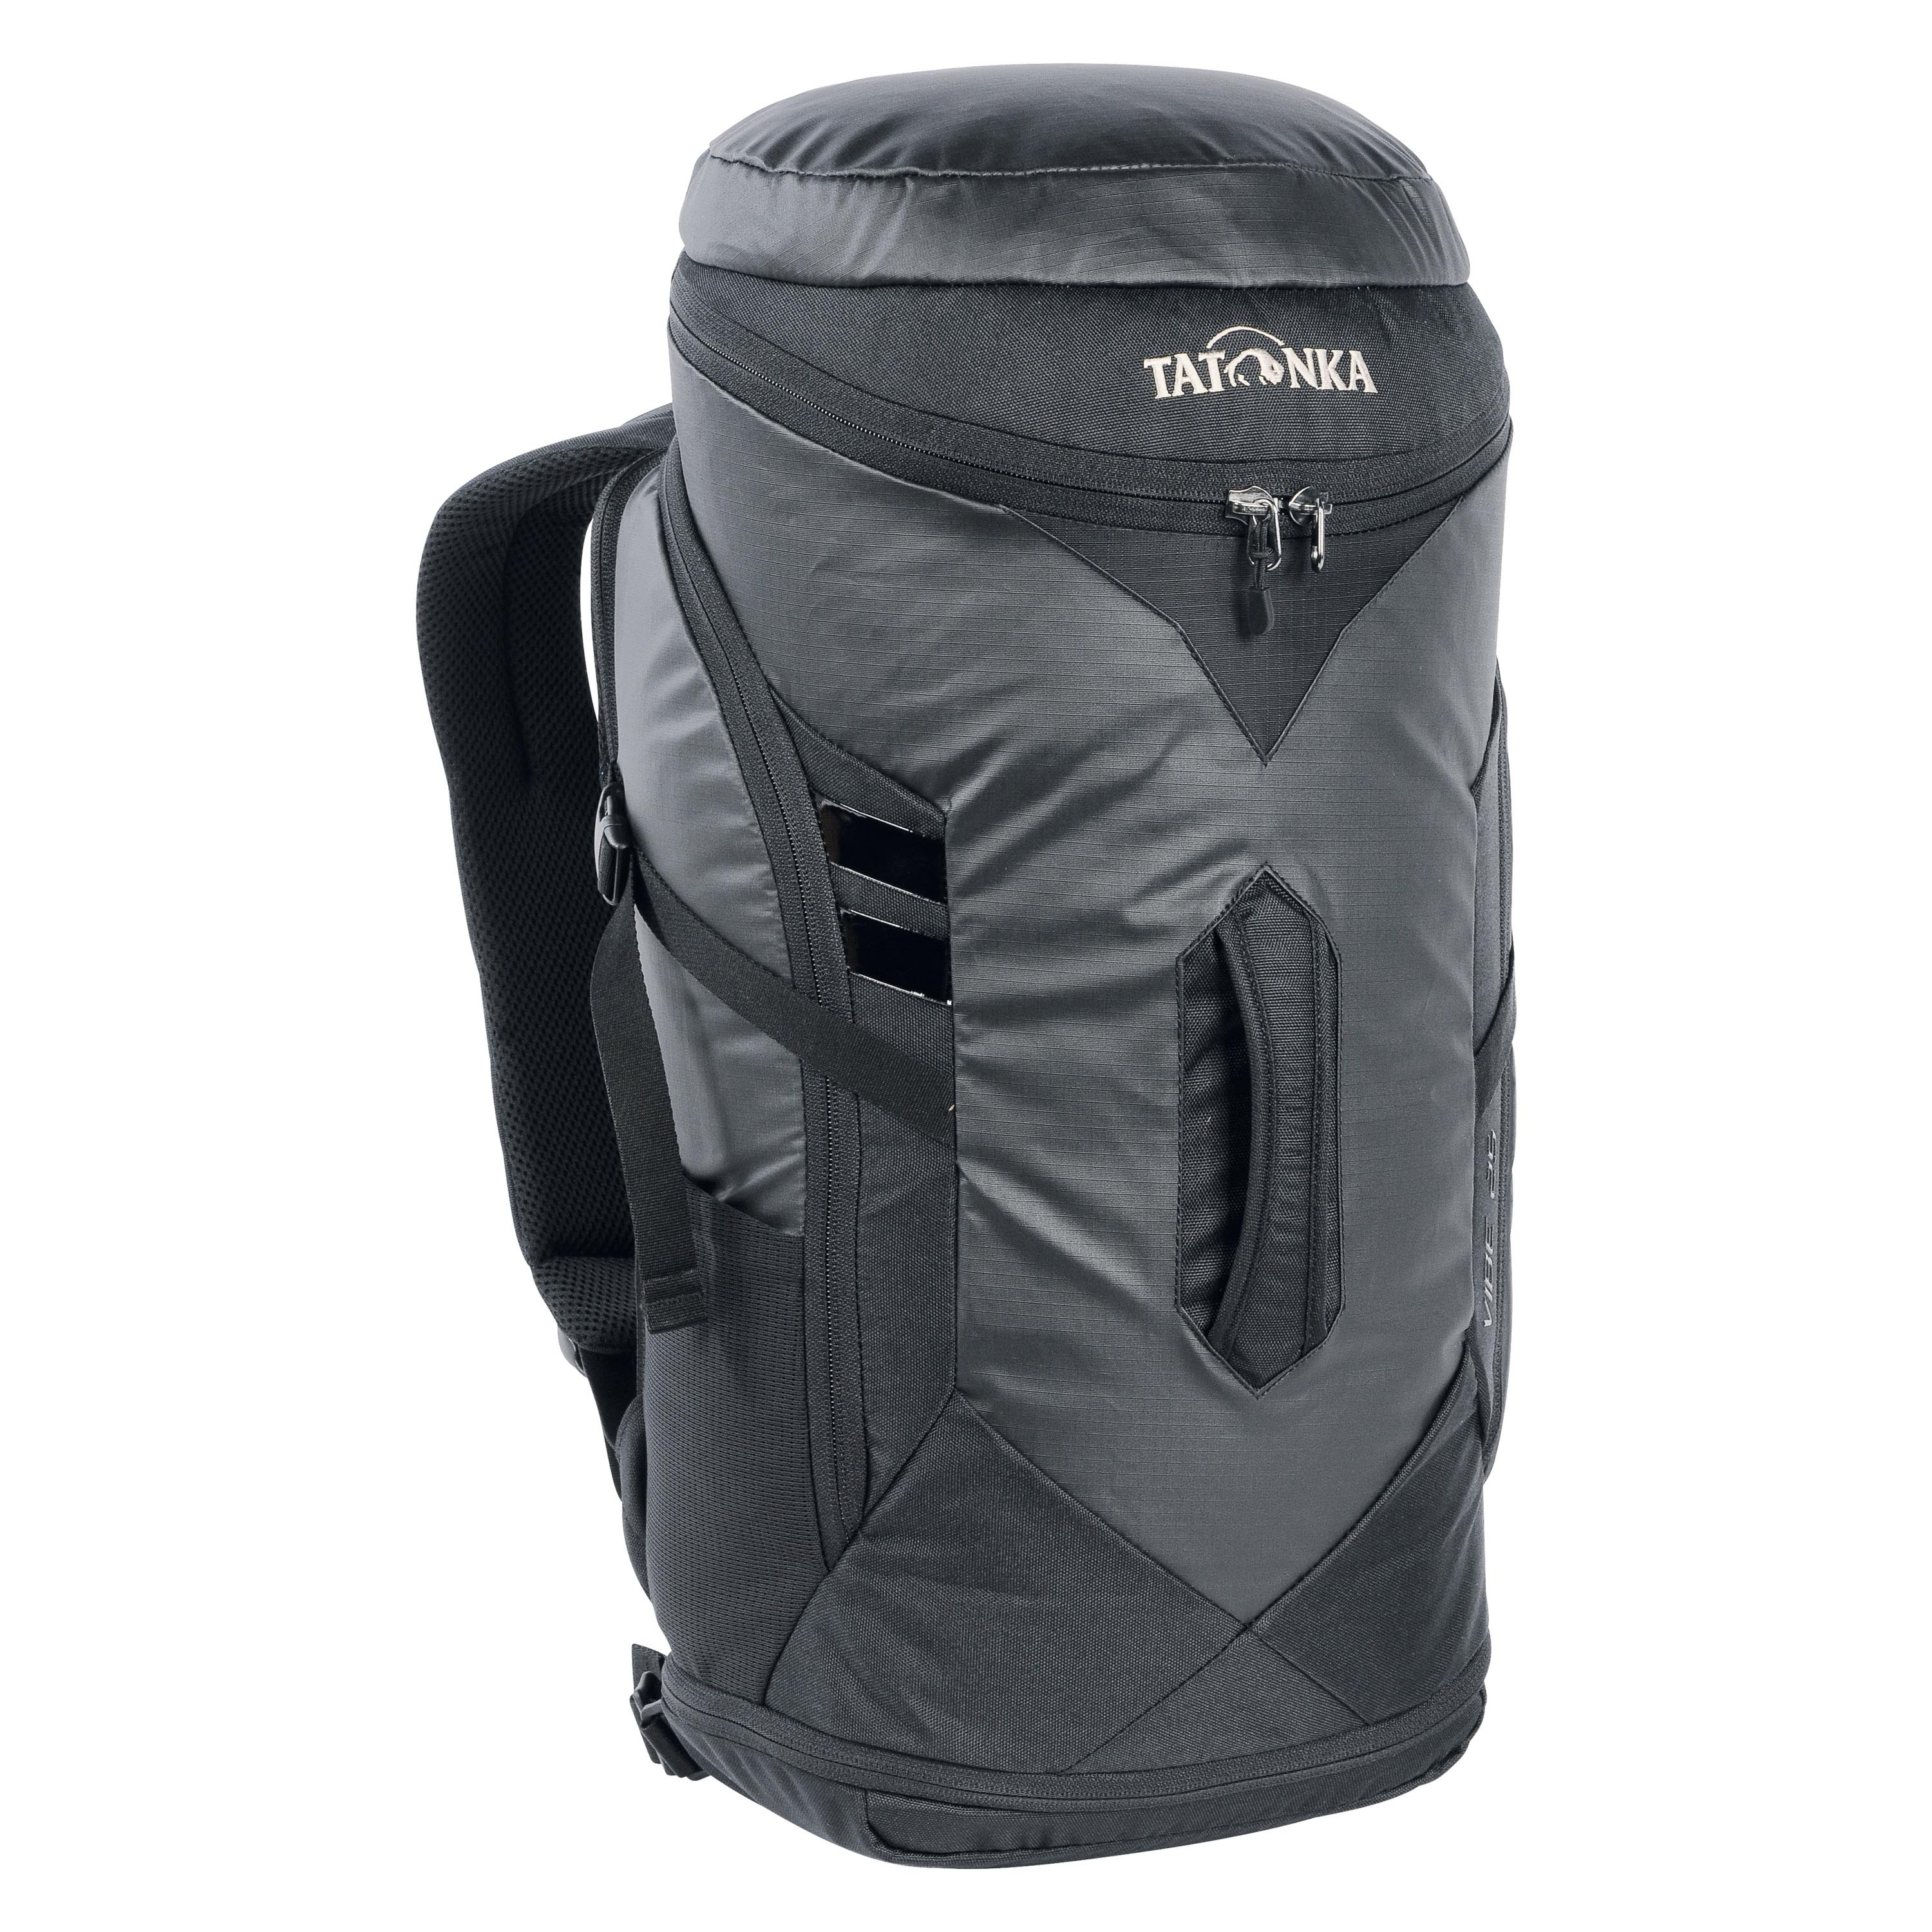 Backpack Tatonka Vibe 25 black